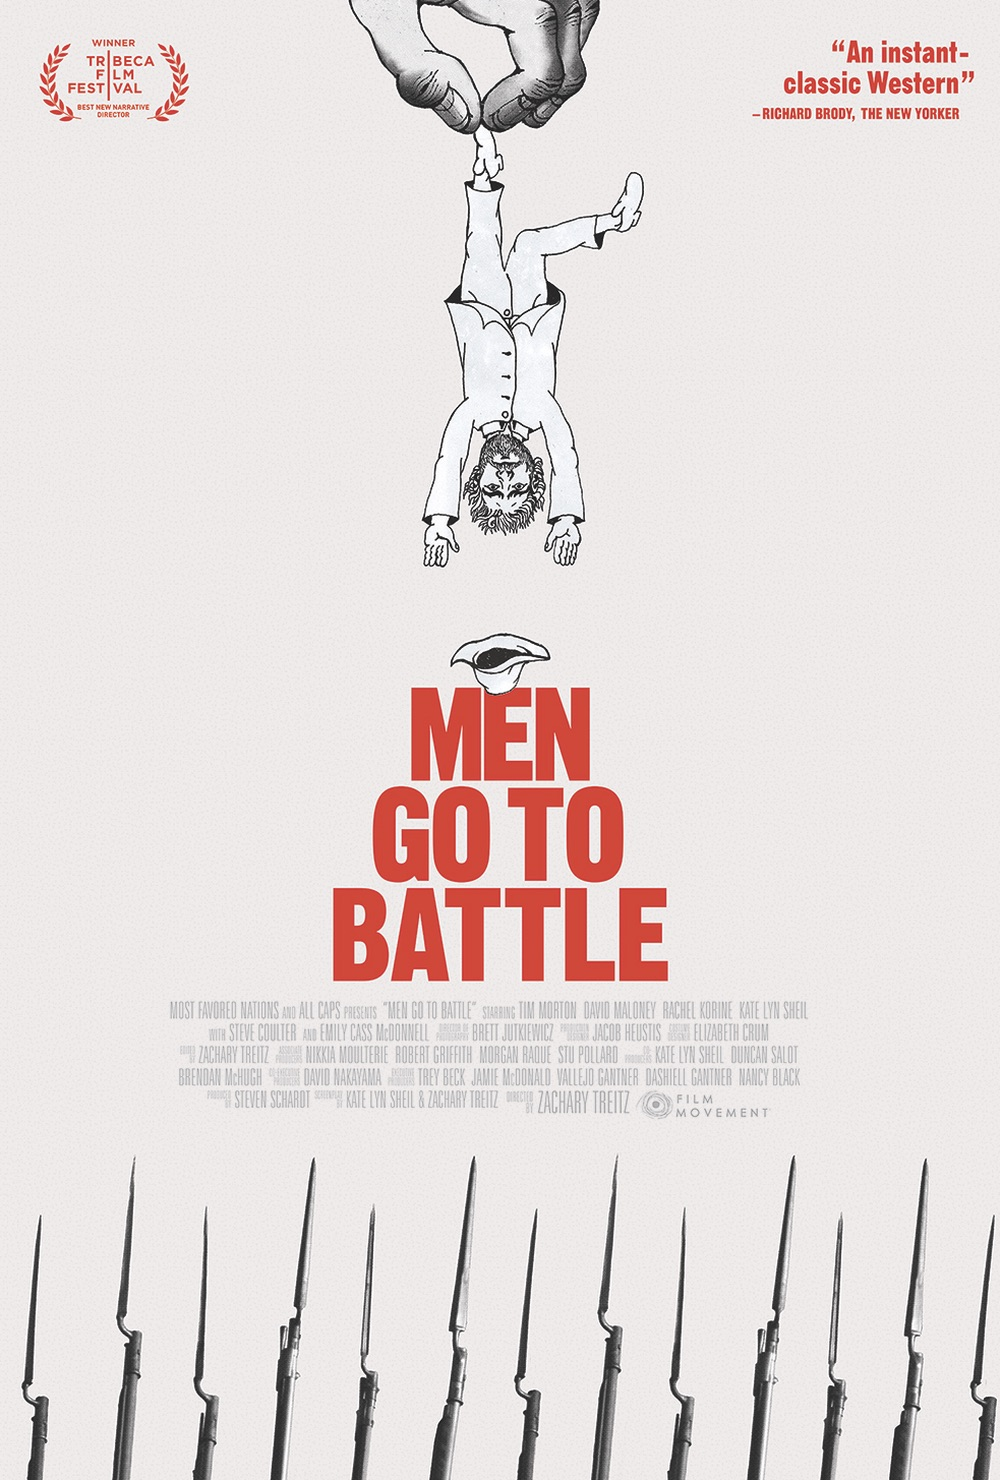 Men-Go-To-Battle Poster.jpg